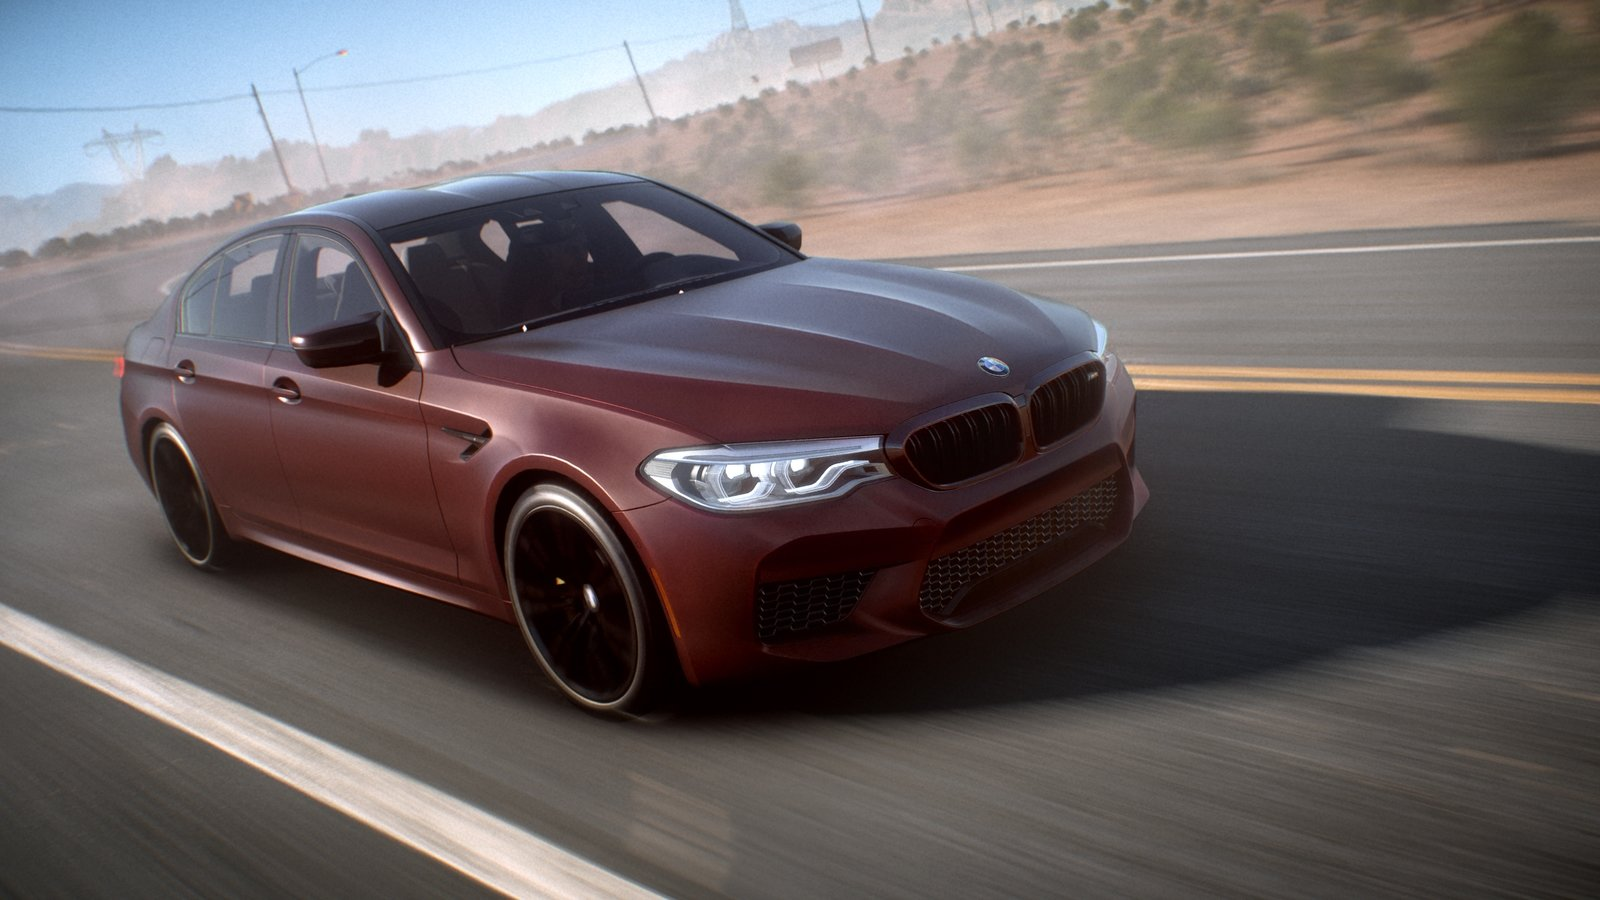 drive the new bmw m5 first in need for speed payback news top speed. Black Bedroom Furniture Sets. Home Design Ideas